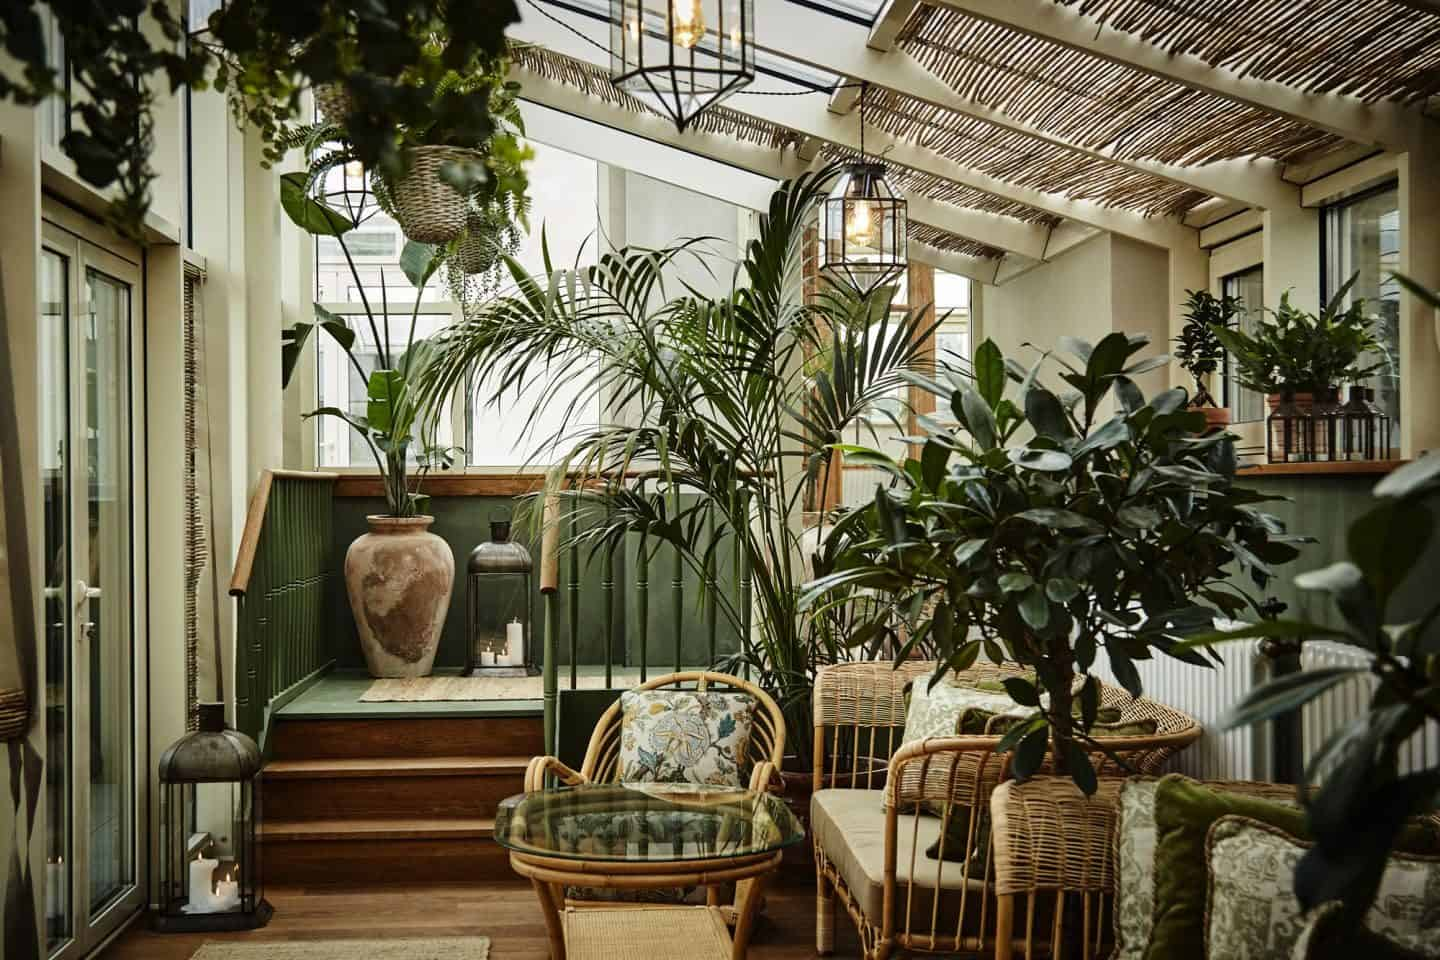 Sander Hotel, a design hotel in copenhagen. The roof terrace has a strong biophilic influence and boasts beautiful rooftop views over the city